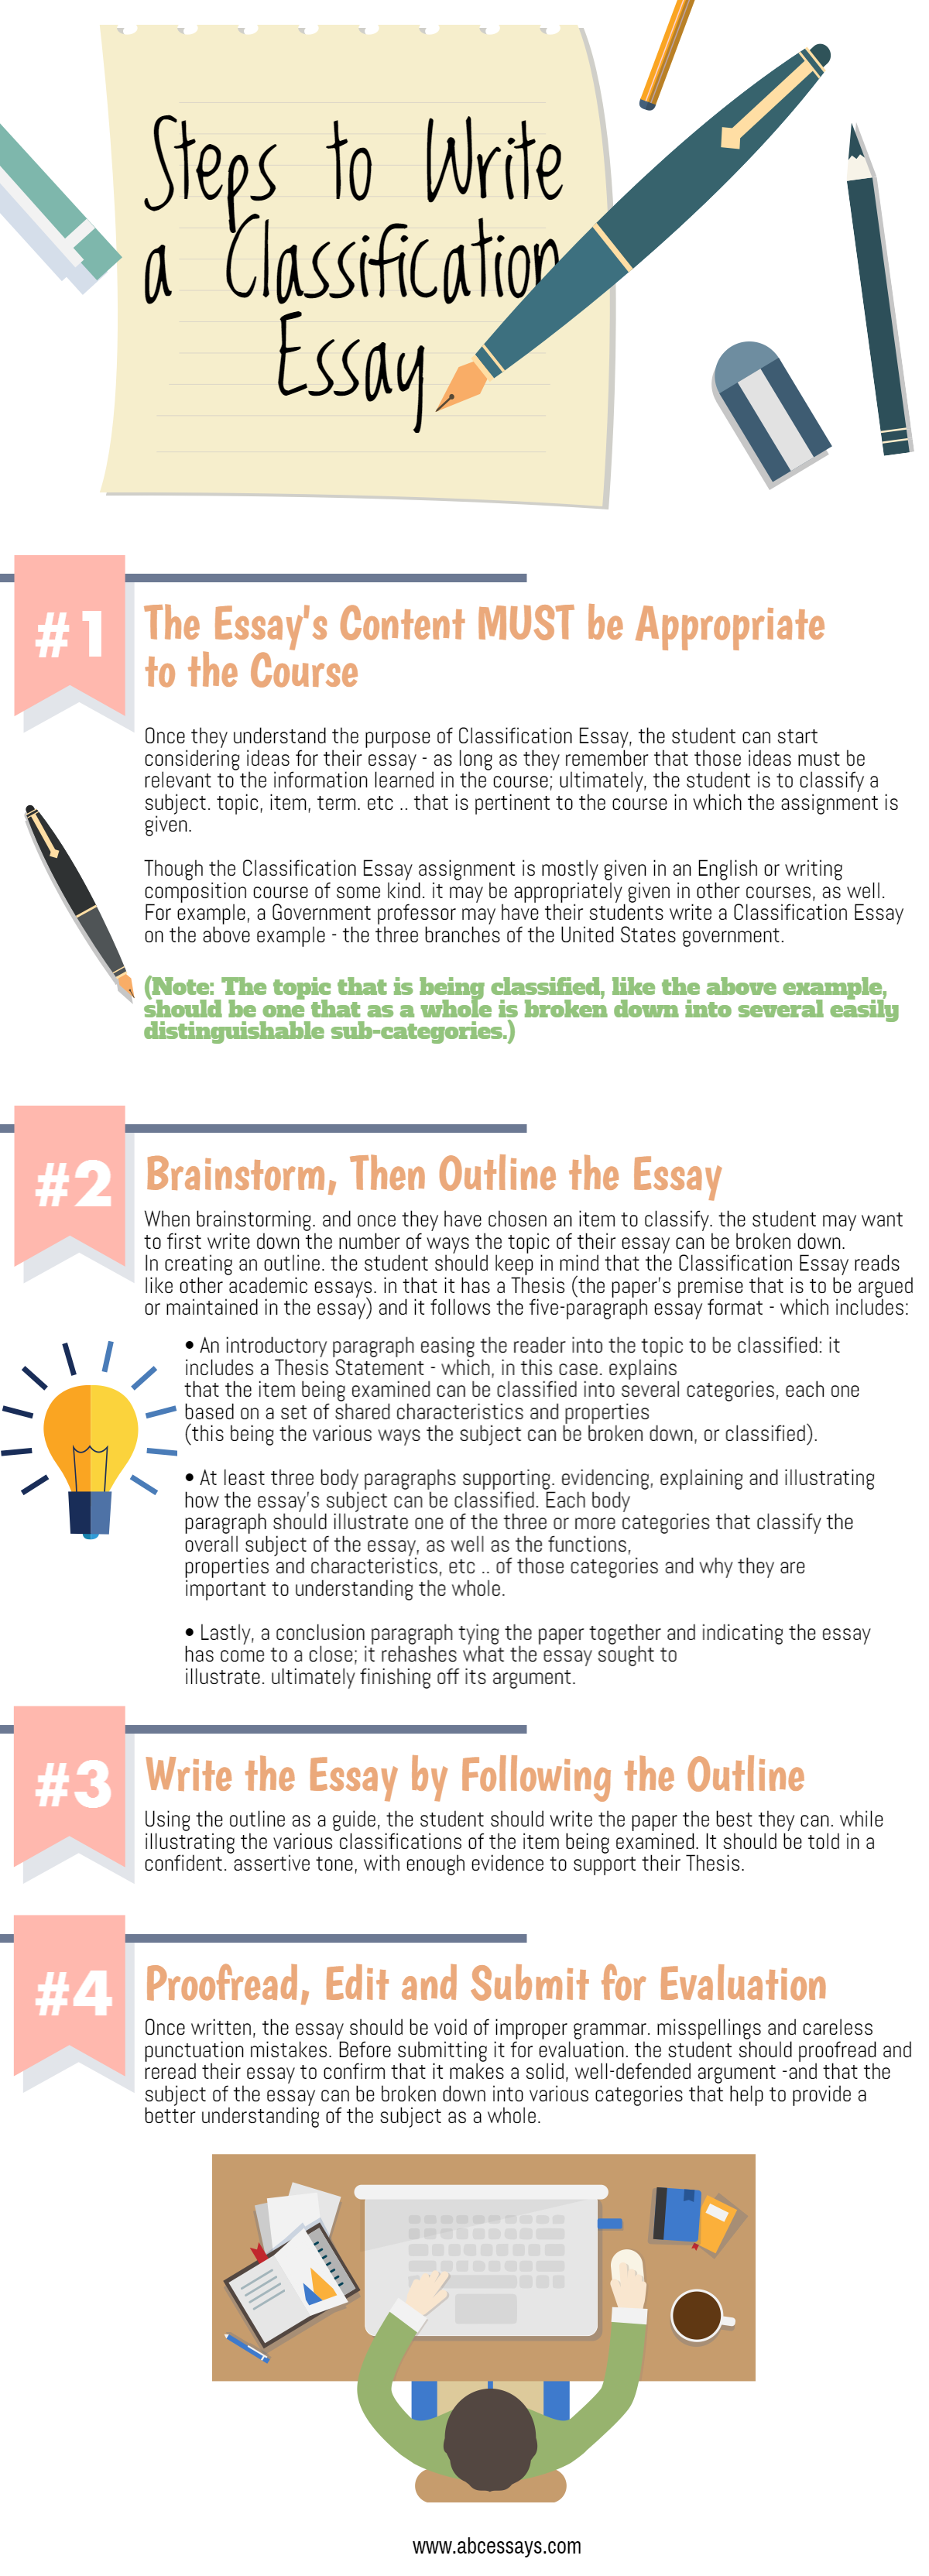 essay etc 2 gather the information you need for your essay using your rough plan to maintain your focus, gather the information you need for your essay - find the journal articles and books etc that will form the evidence for your arguments.